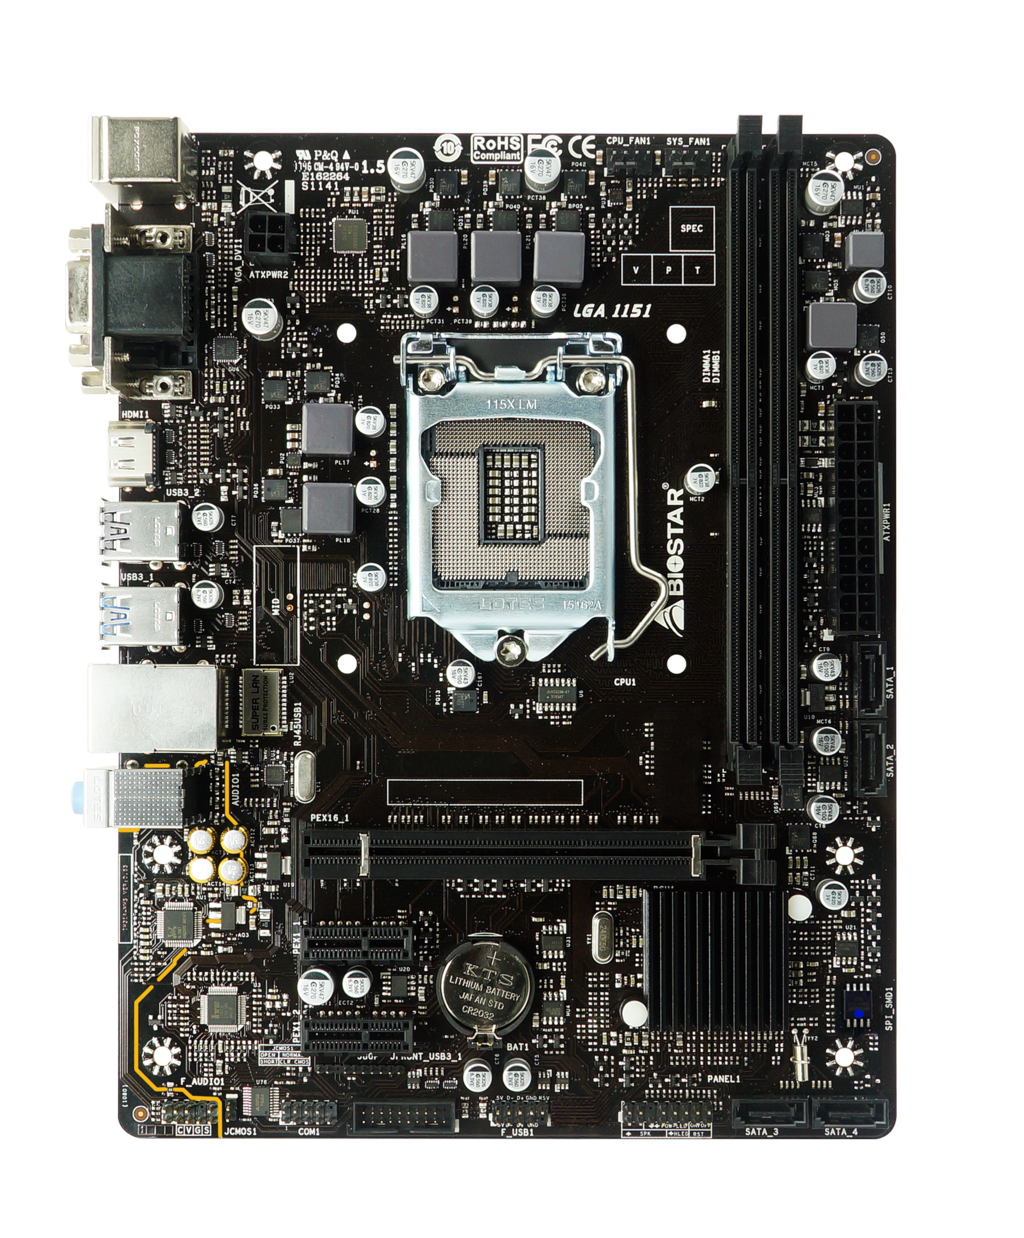 gigabyte motherboard drivers for windows 10 32 bit